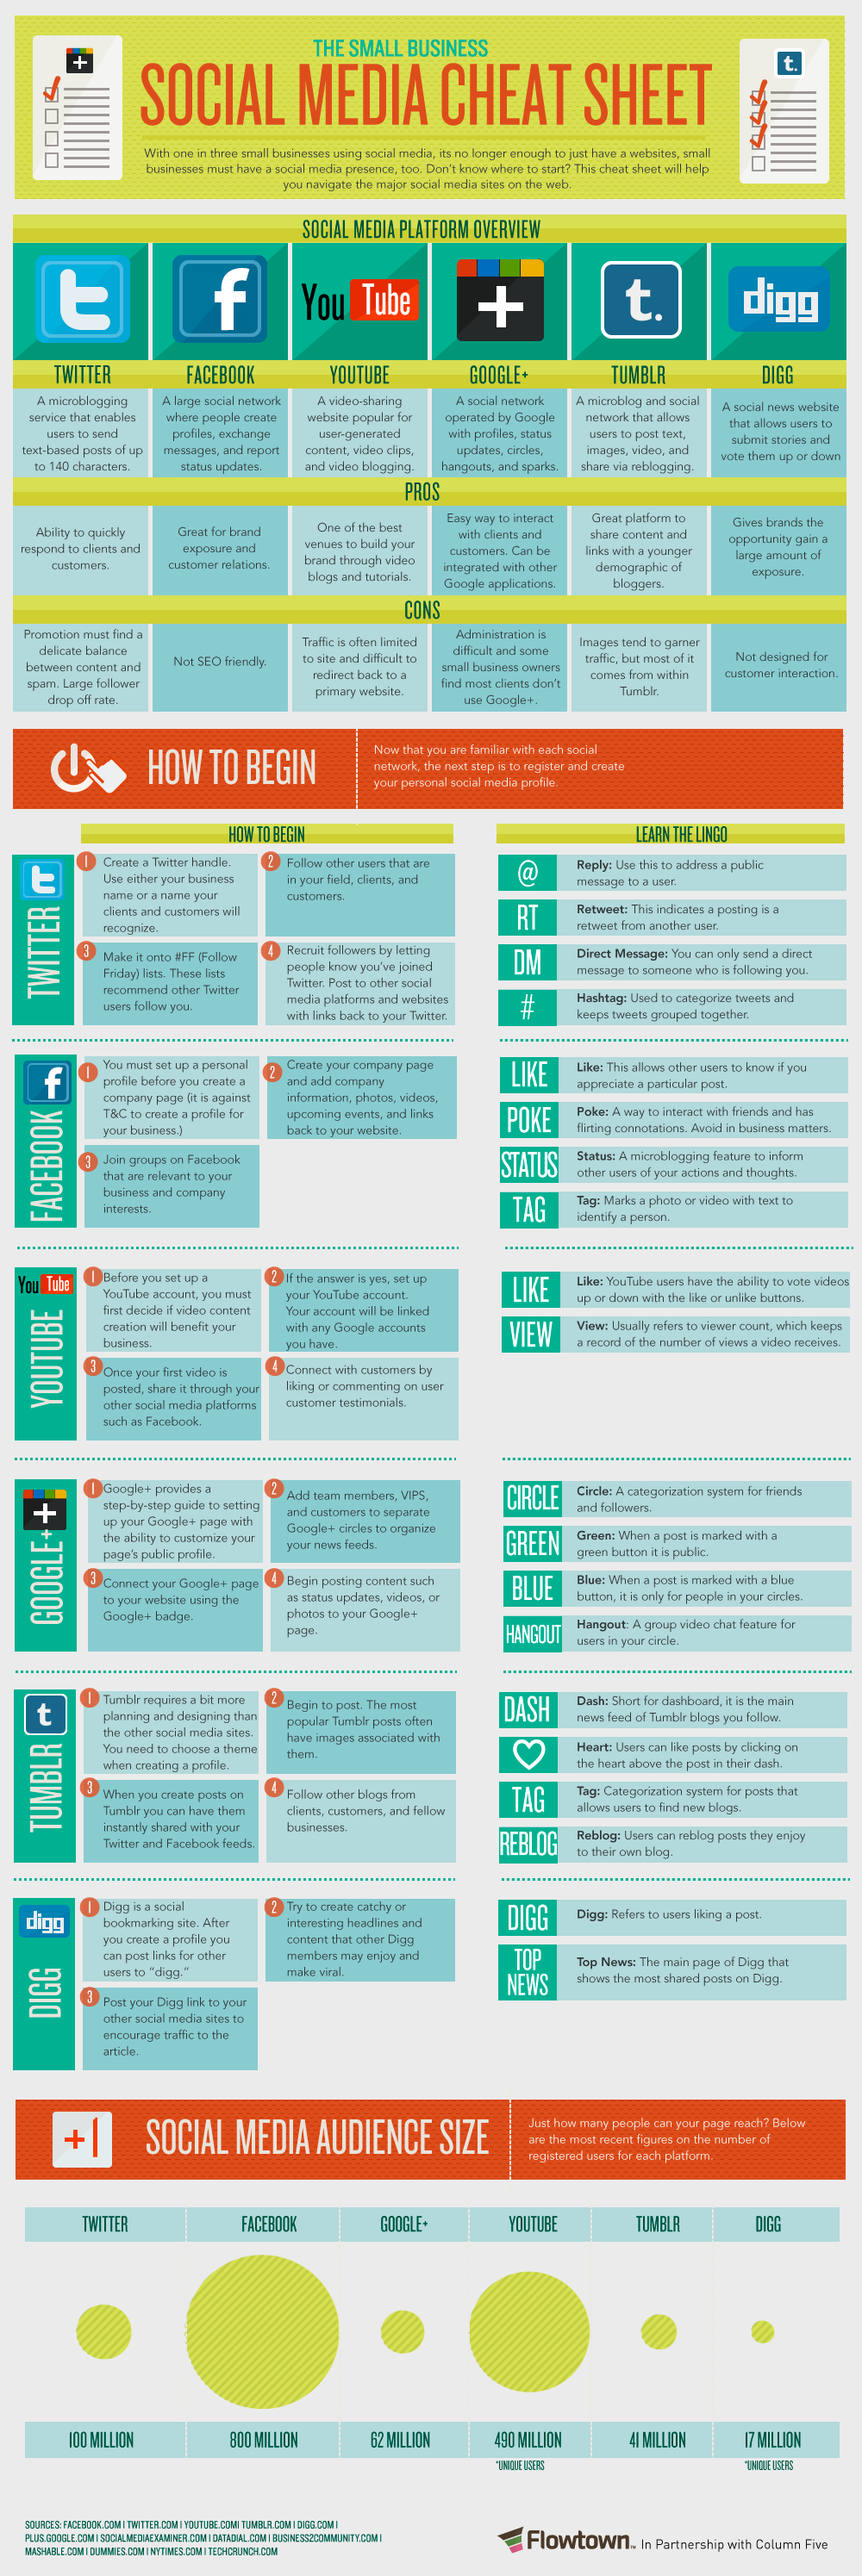 Excellent resource from FlowTown. With one in three small businesses using social media, it's no longer enough to just have a website, small businesses must have a social media presence, too. Don't know where to start? This cheat sheet will help you navigate the major social media sites on the web. Flowtown – Social Media …